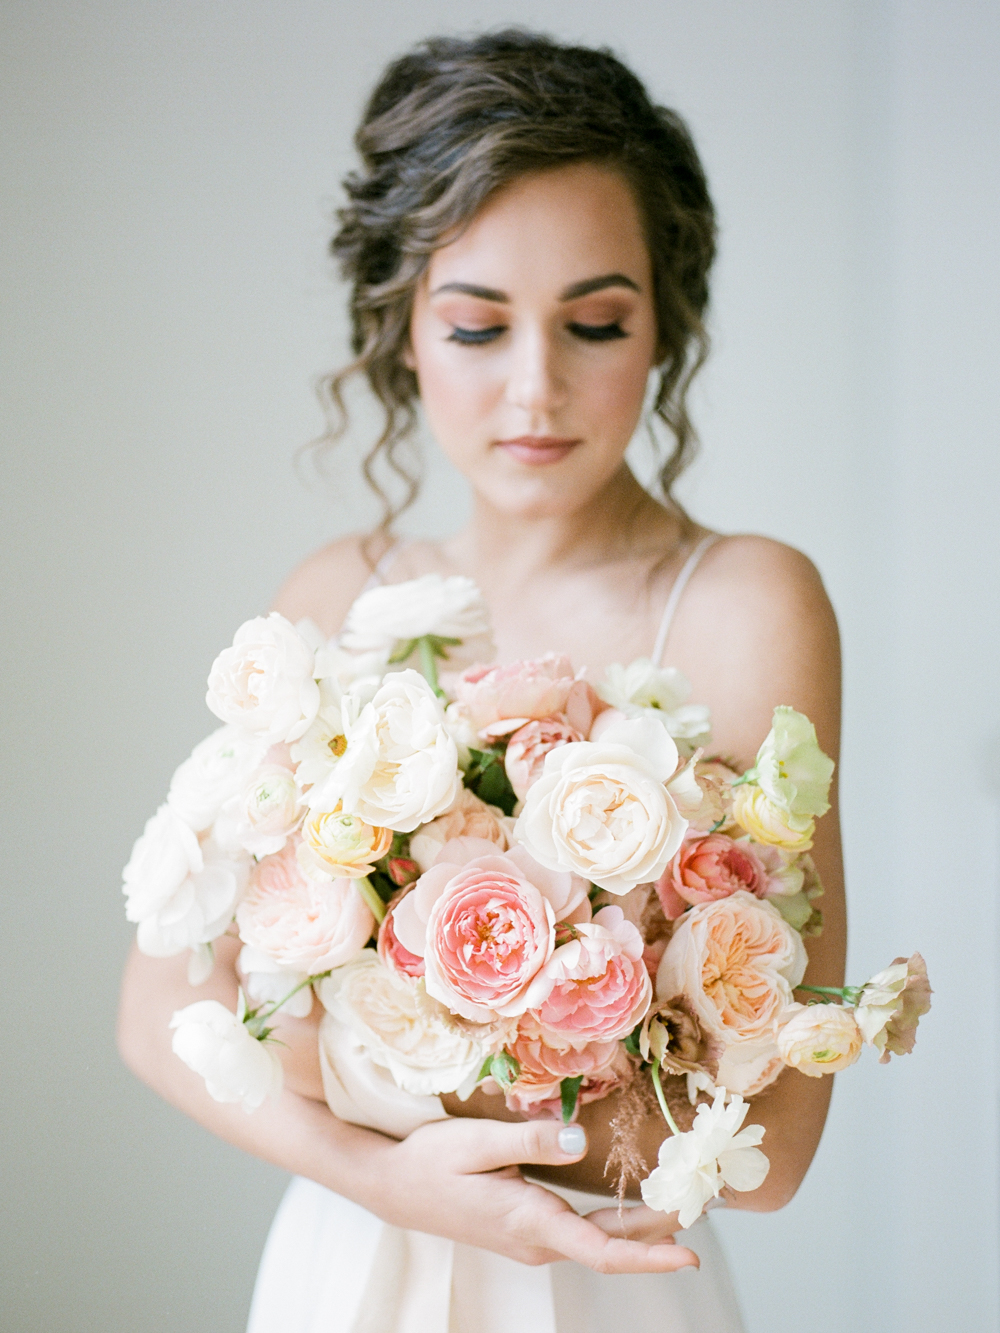 Christine Gosch - destination film photographer - houston wedding photographer - fine art film photographer - elopement photographer - destination wedding - understated wedding - simple beautiful wedding photography-96.jpg